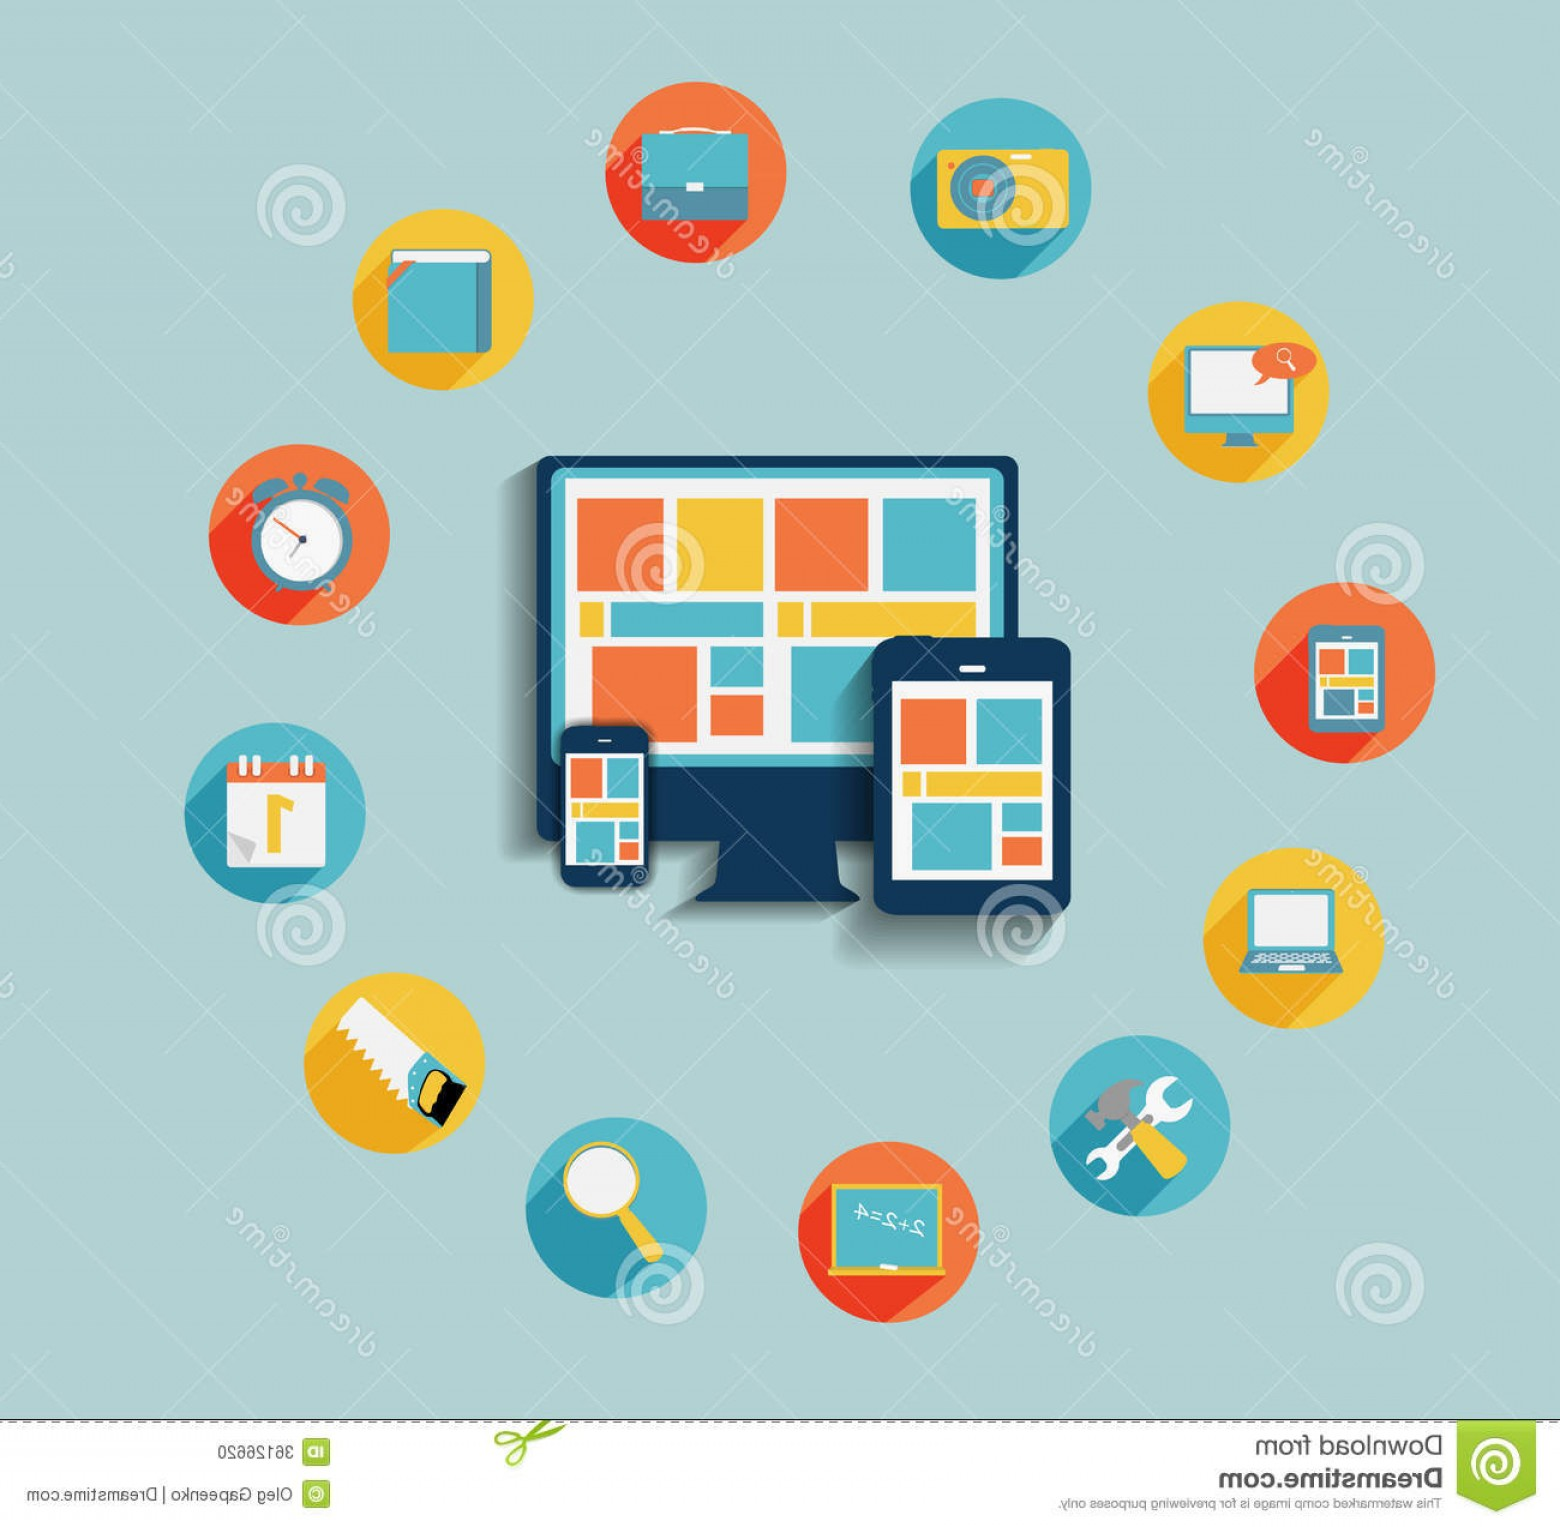 Computer Vector Icon Flat: Stock Photo Modern Flat Icon Set Web Mobile Application Computer Connected Devices Stylish Colors Vector Image